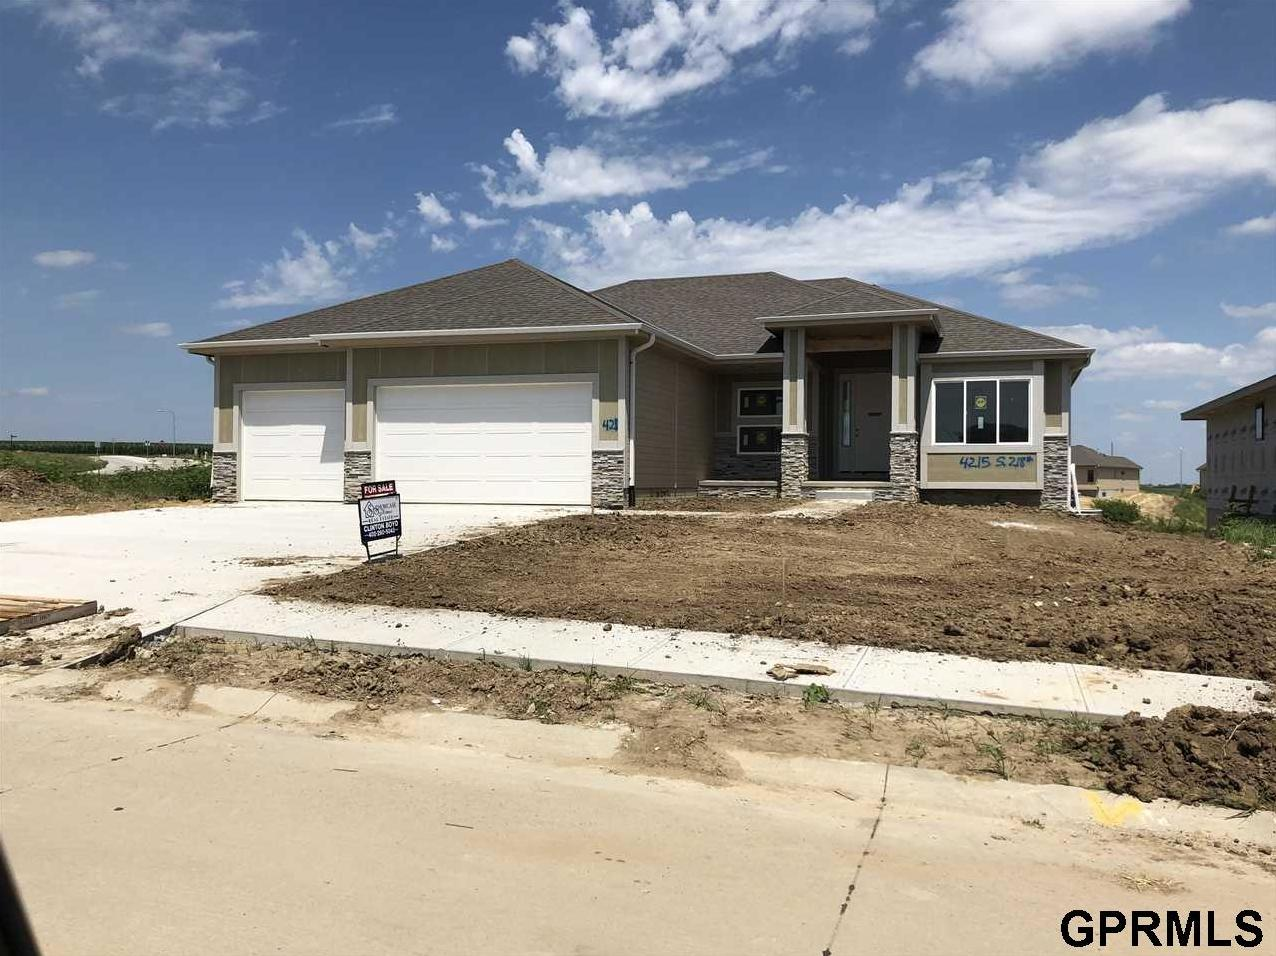 Photo of 4215 S 218th Avenue Elkhorn NE 68022